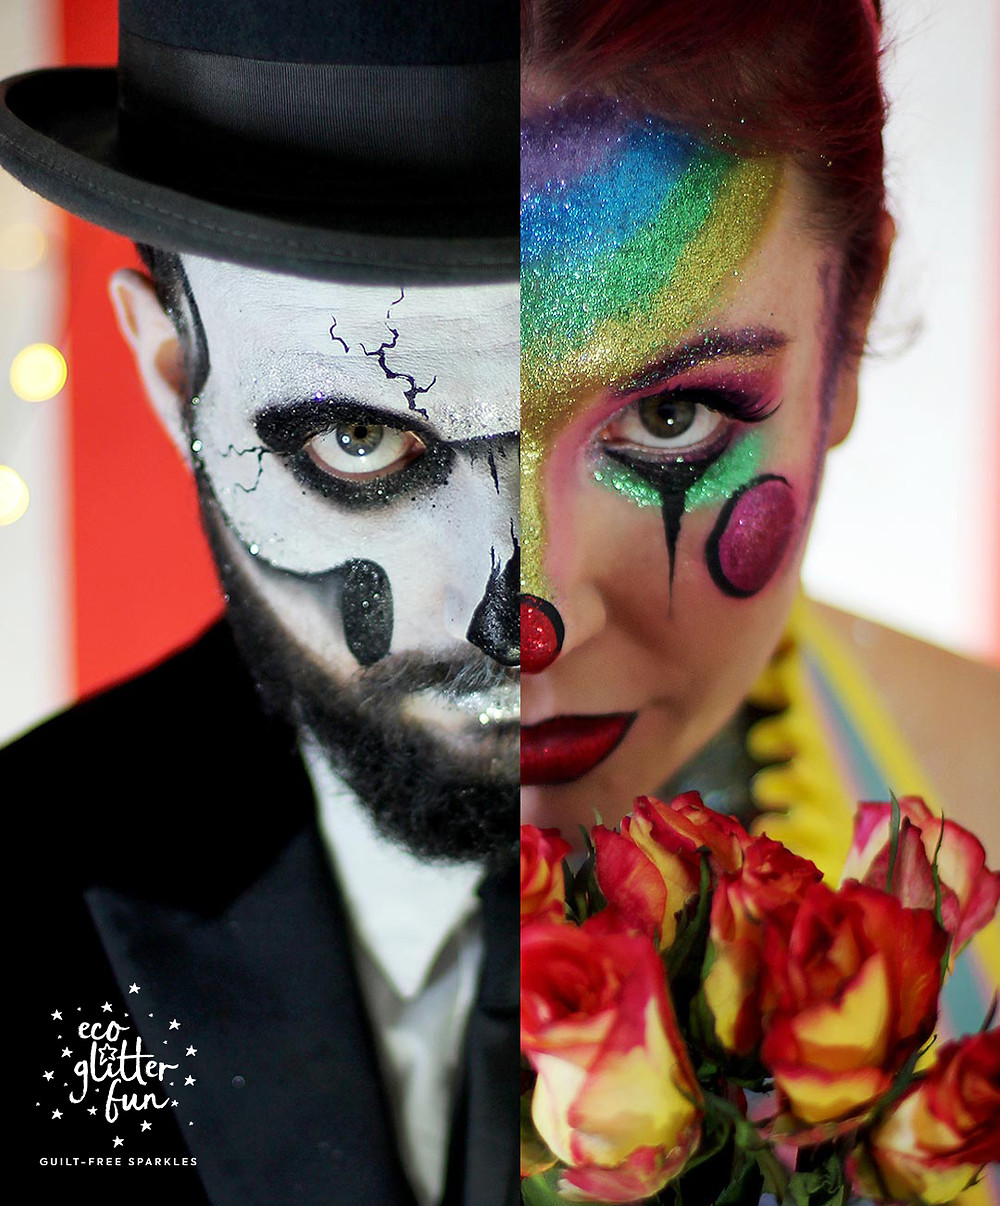 Halloween makeup ideas with Glitter by Eco Glitter Fun